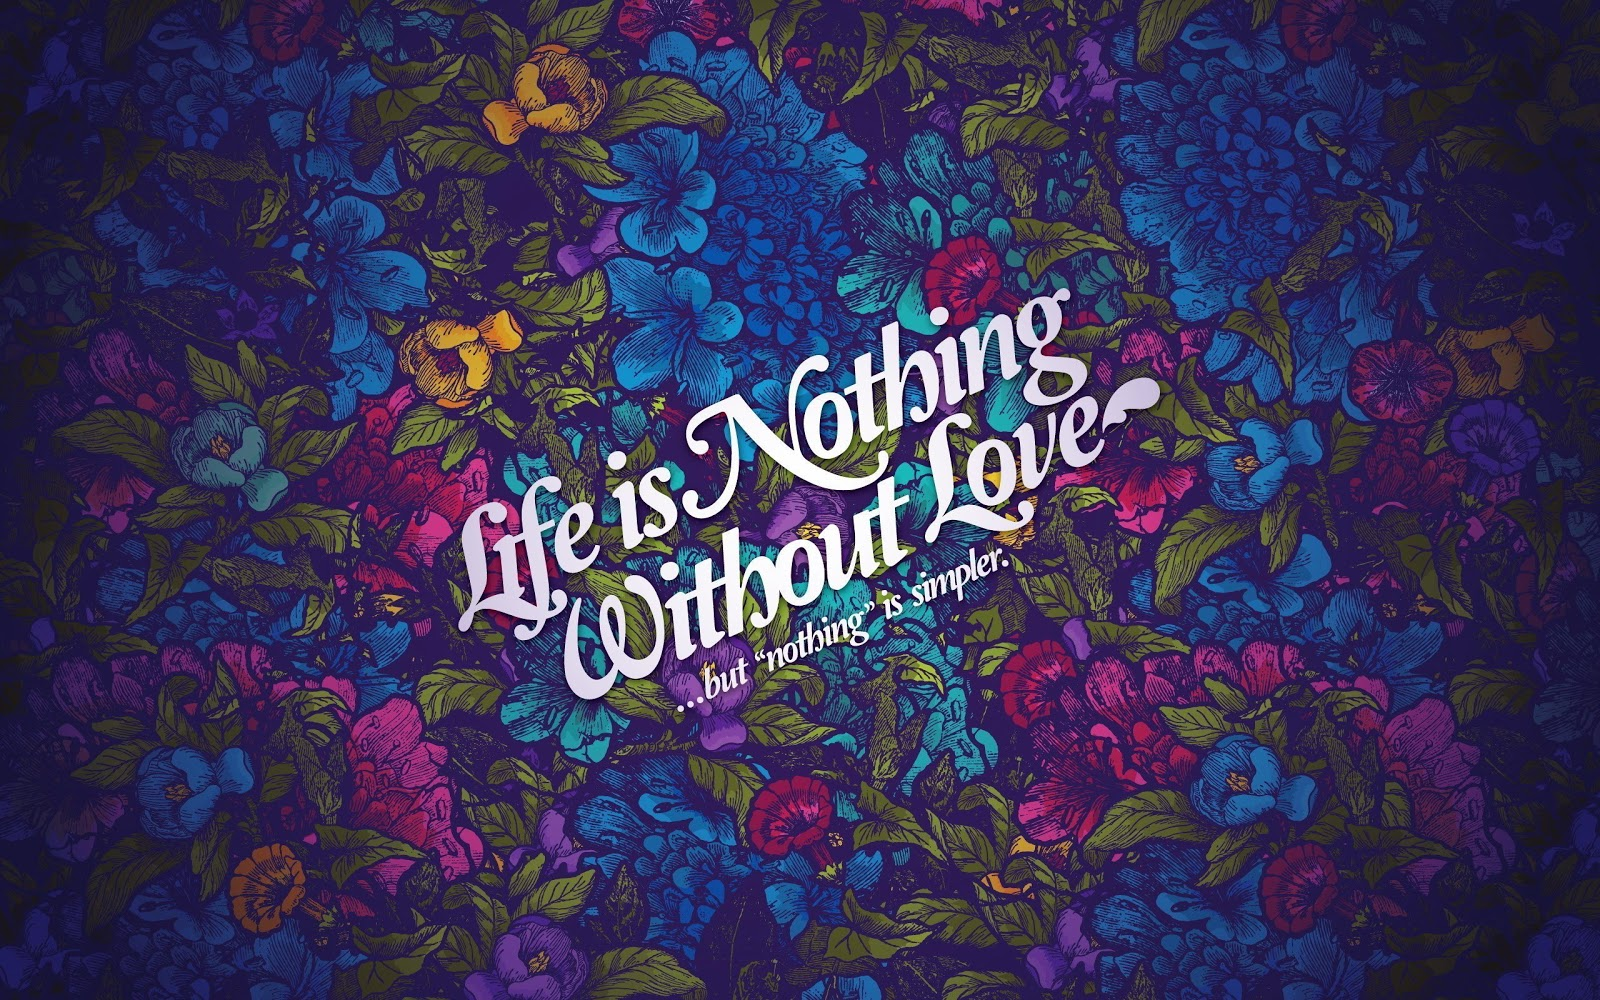 Love Hd Wallpaper For J7 : HD Wallpaper Download: Love HD Wallpapers - Life Nothing Without Love